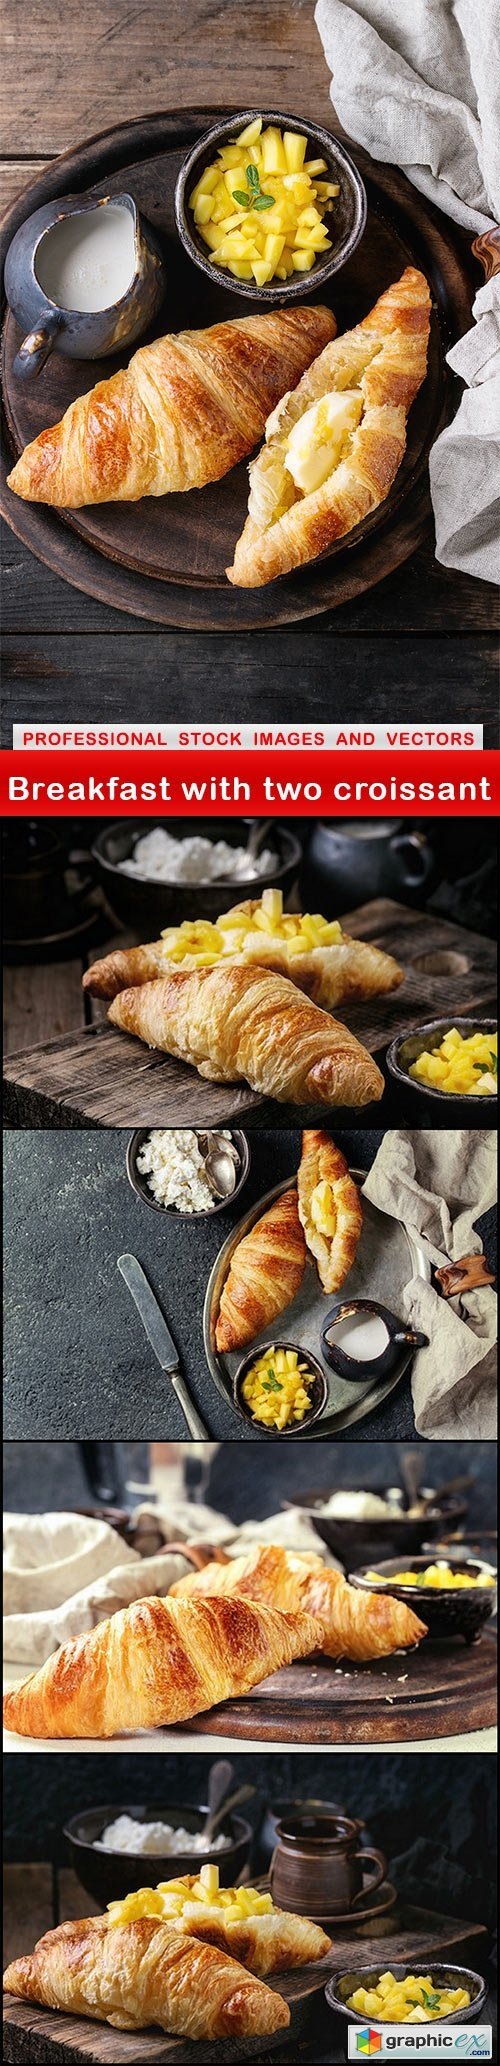 Breakfast with two croissant - 5 UHQ JPEG